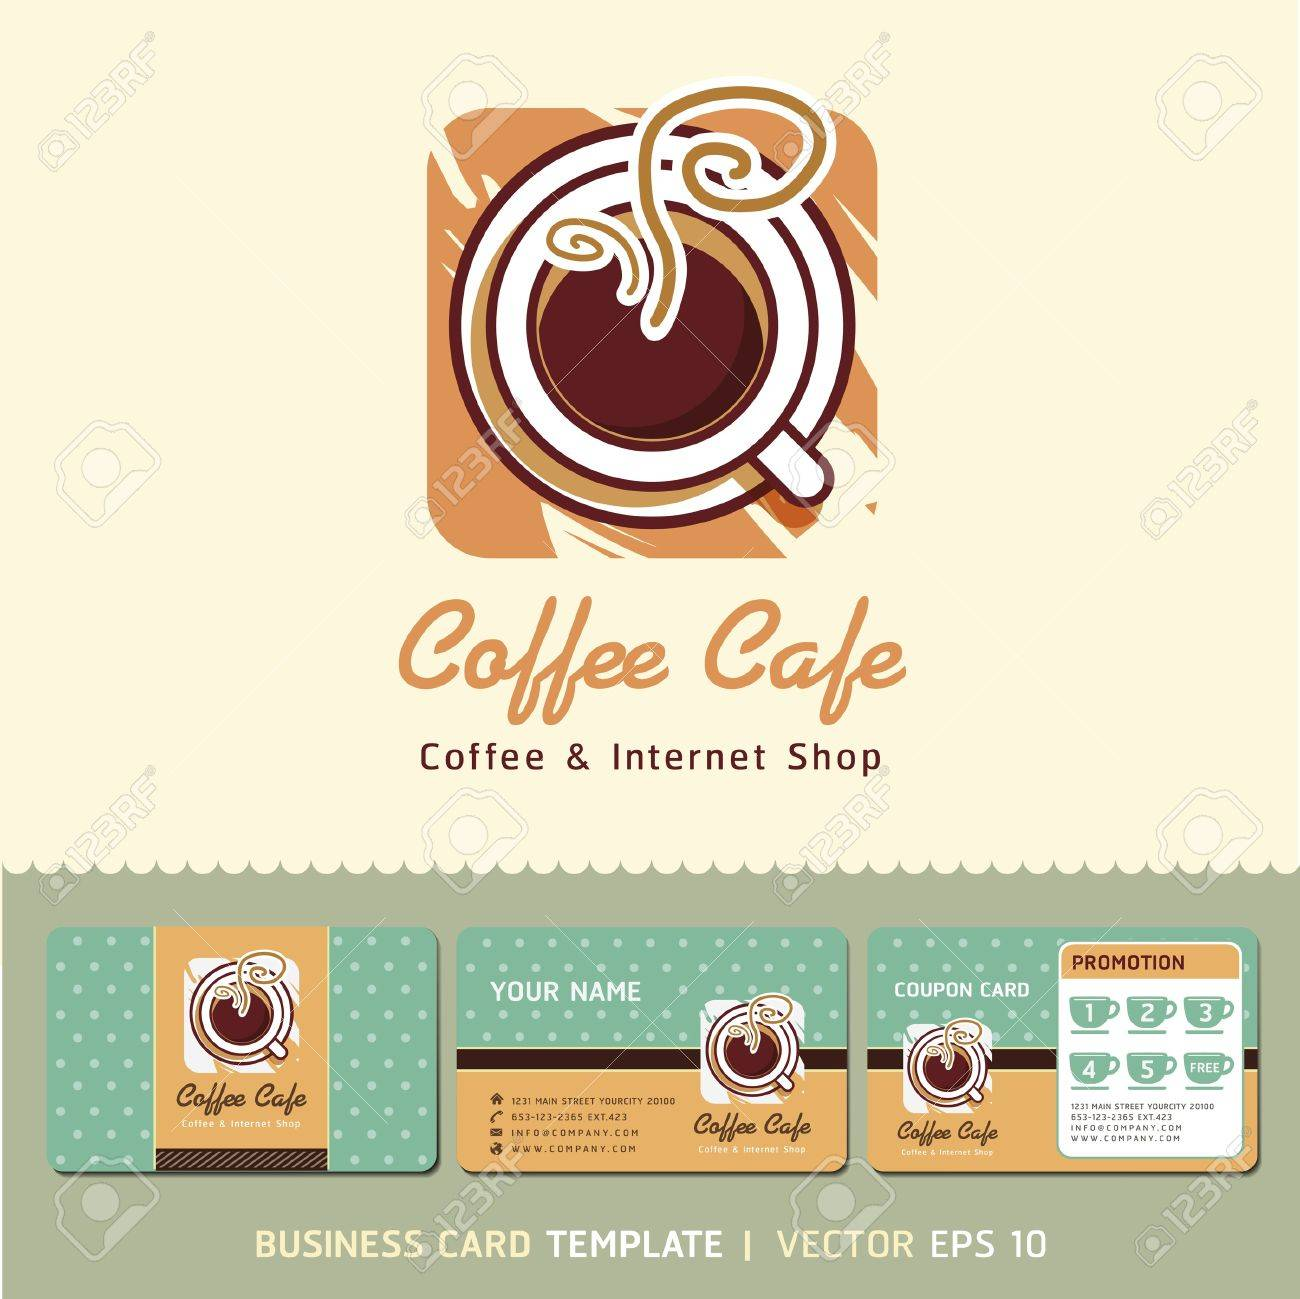 Coffee Cafe Icon Logo And Business Cards Vector Illustration Royalty ...